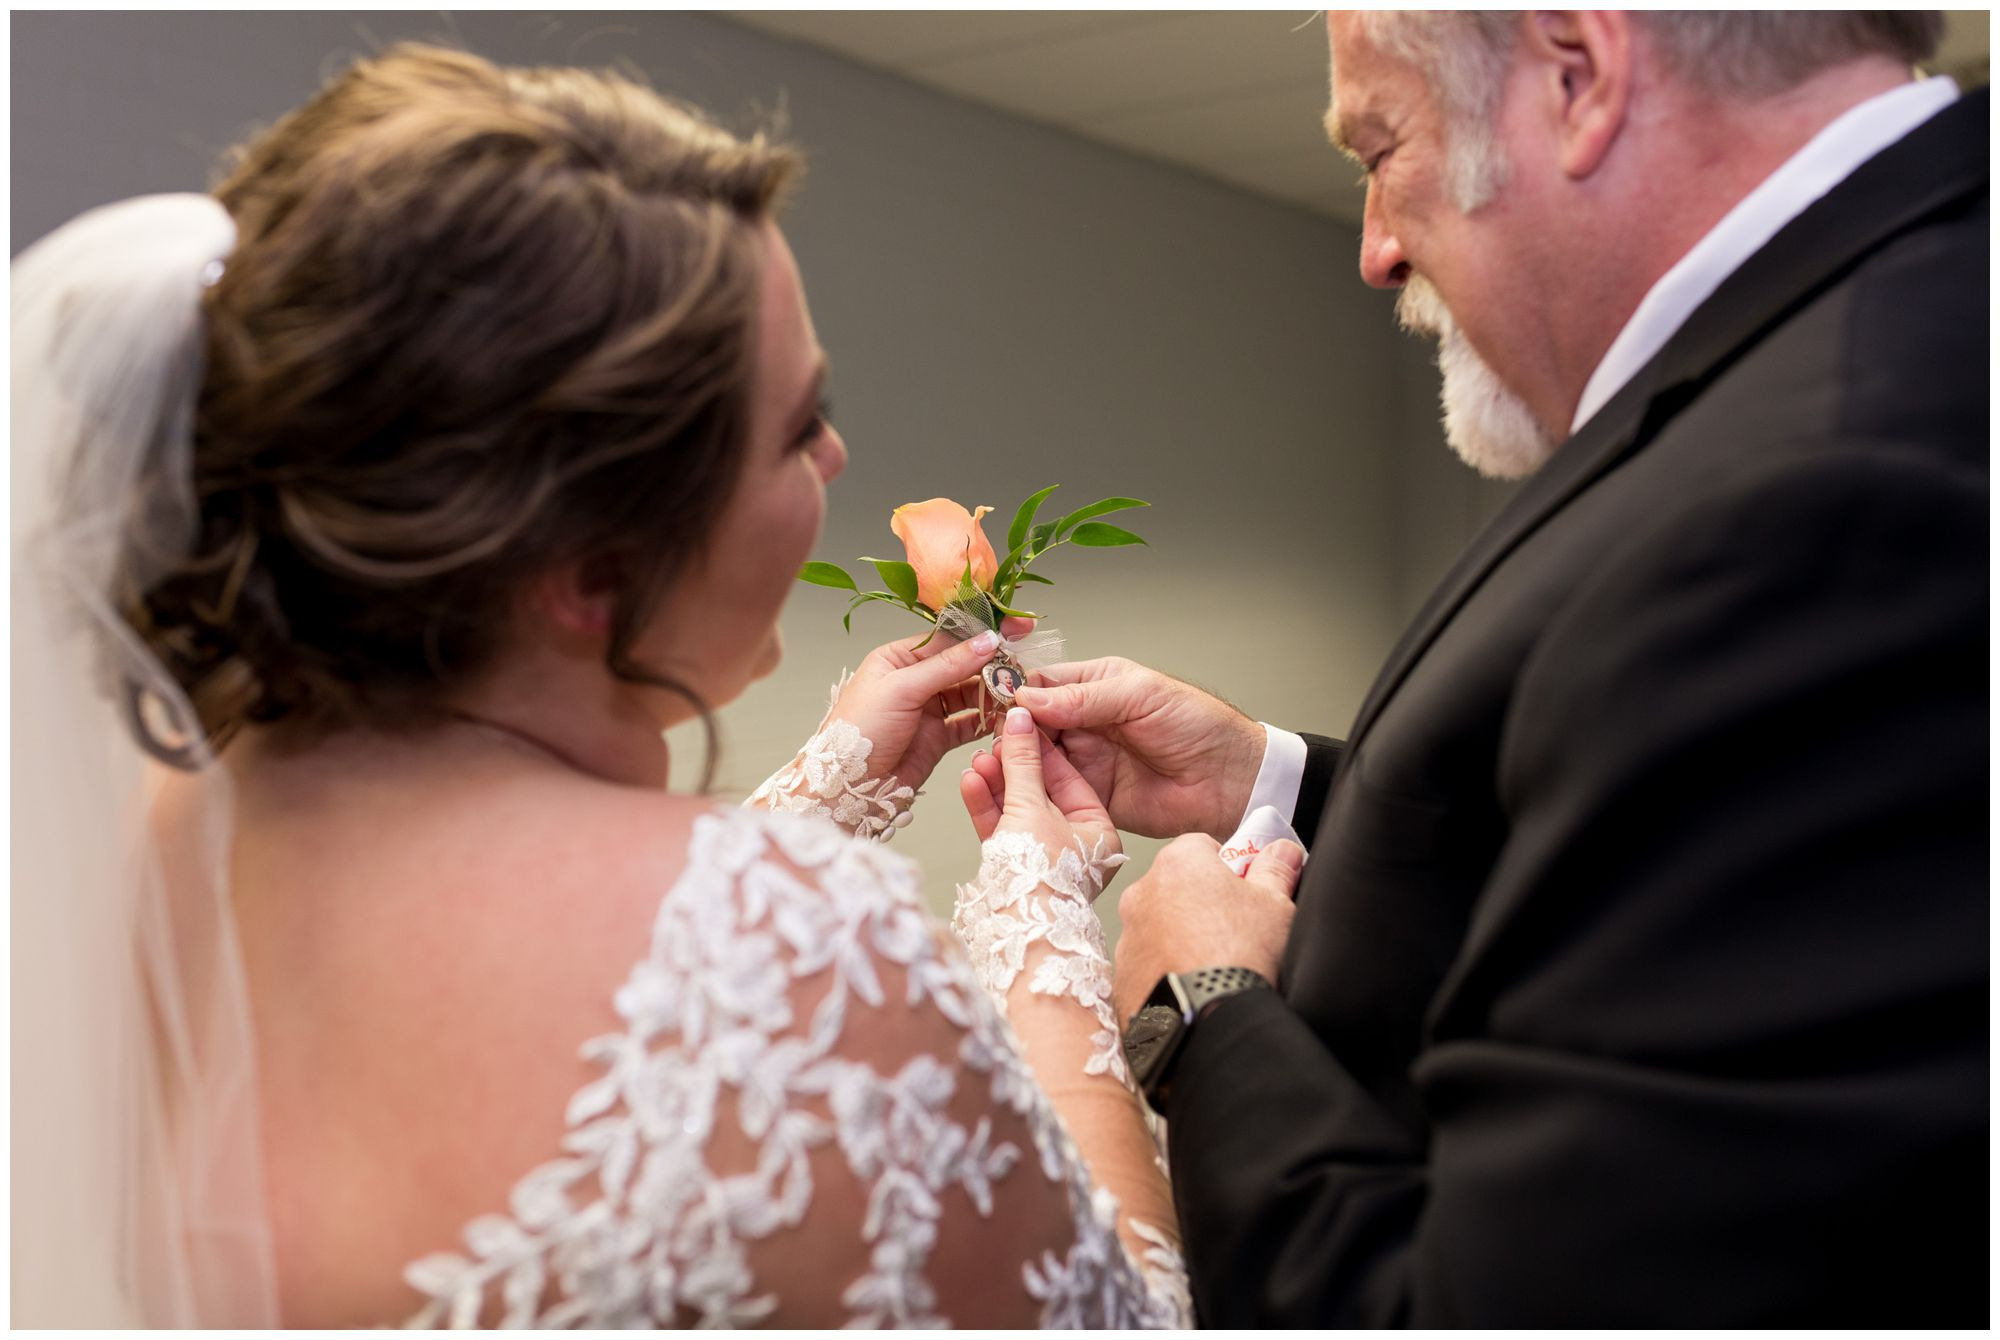 bride shows dad baby photo on boutonniere before wedding ceremony in Decatur Indiana